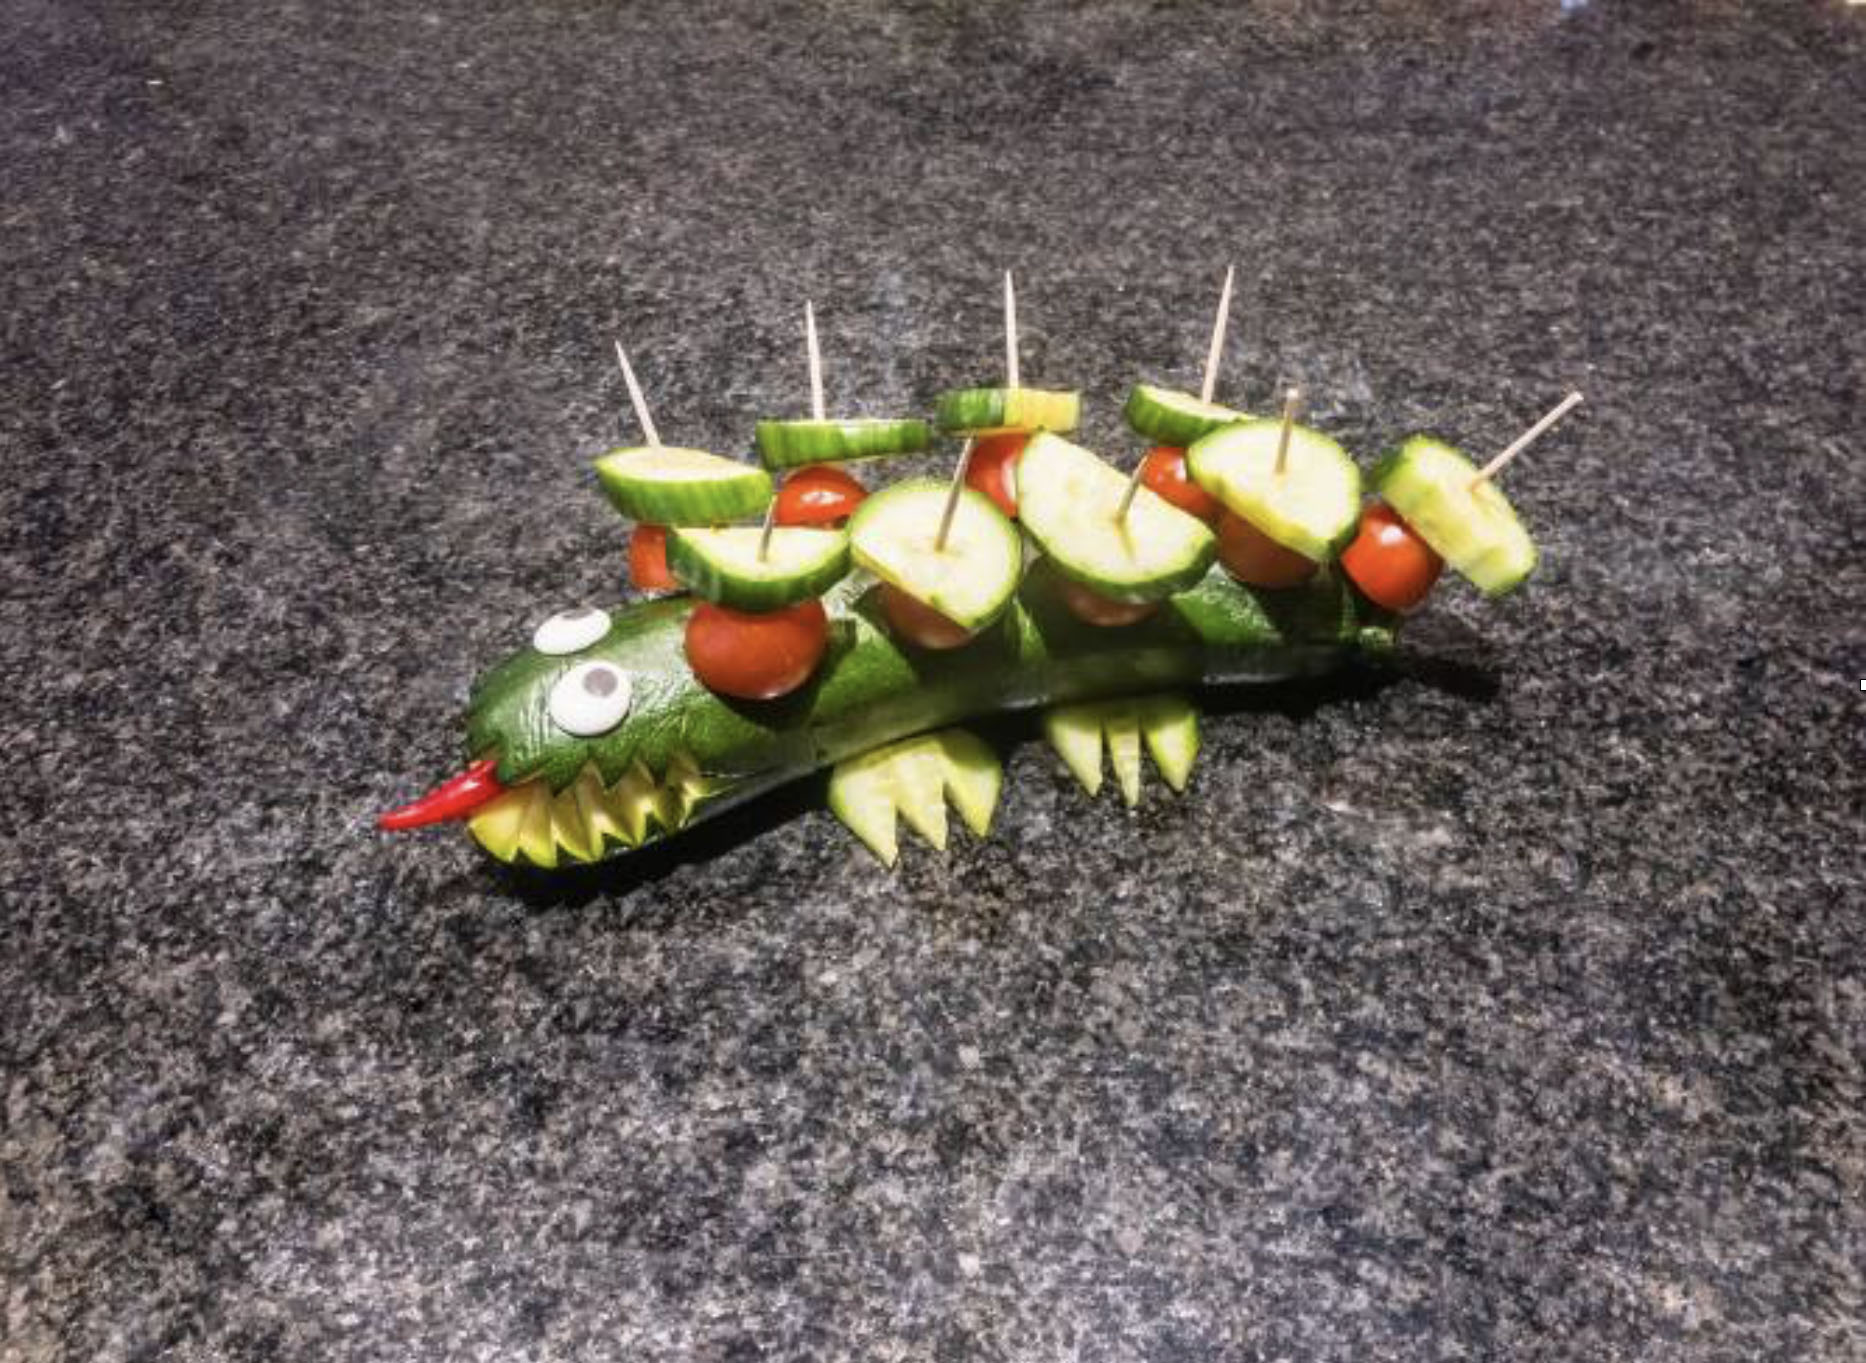 Creative Ways to Incorporate Veggies into Kids' Meals: Edible Animal Friends